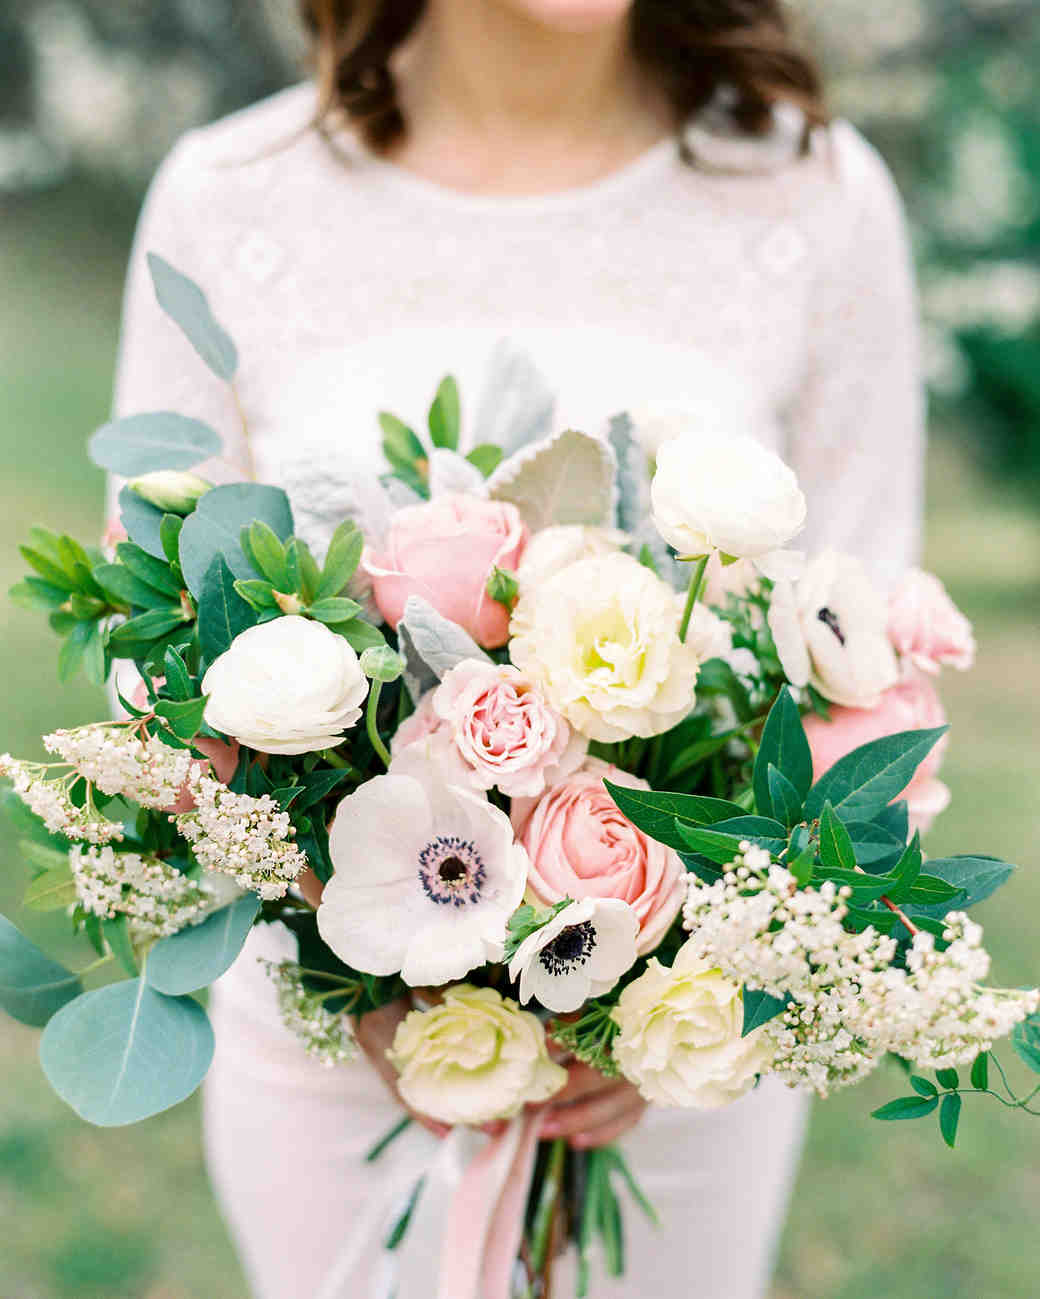 Wedding Flowers Meaning: The 50 Best Spring Wedding Bouquets